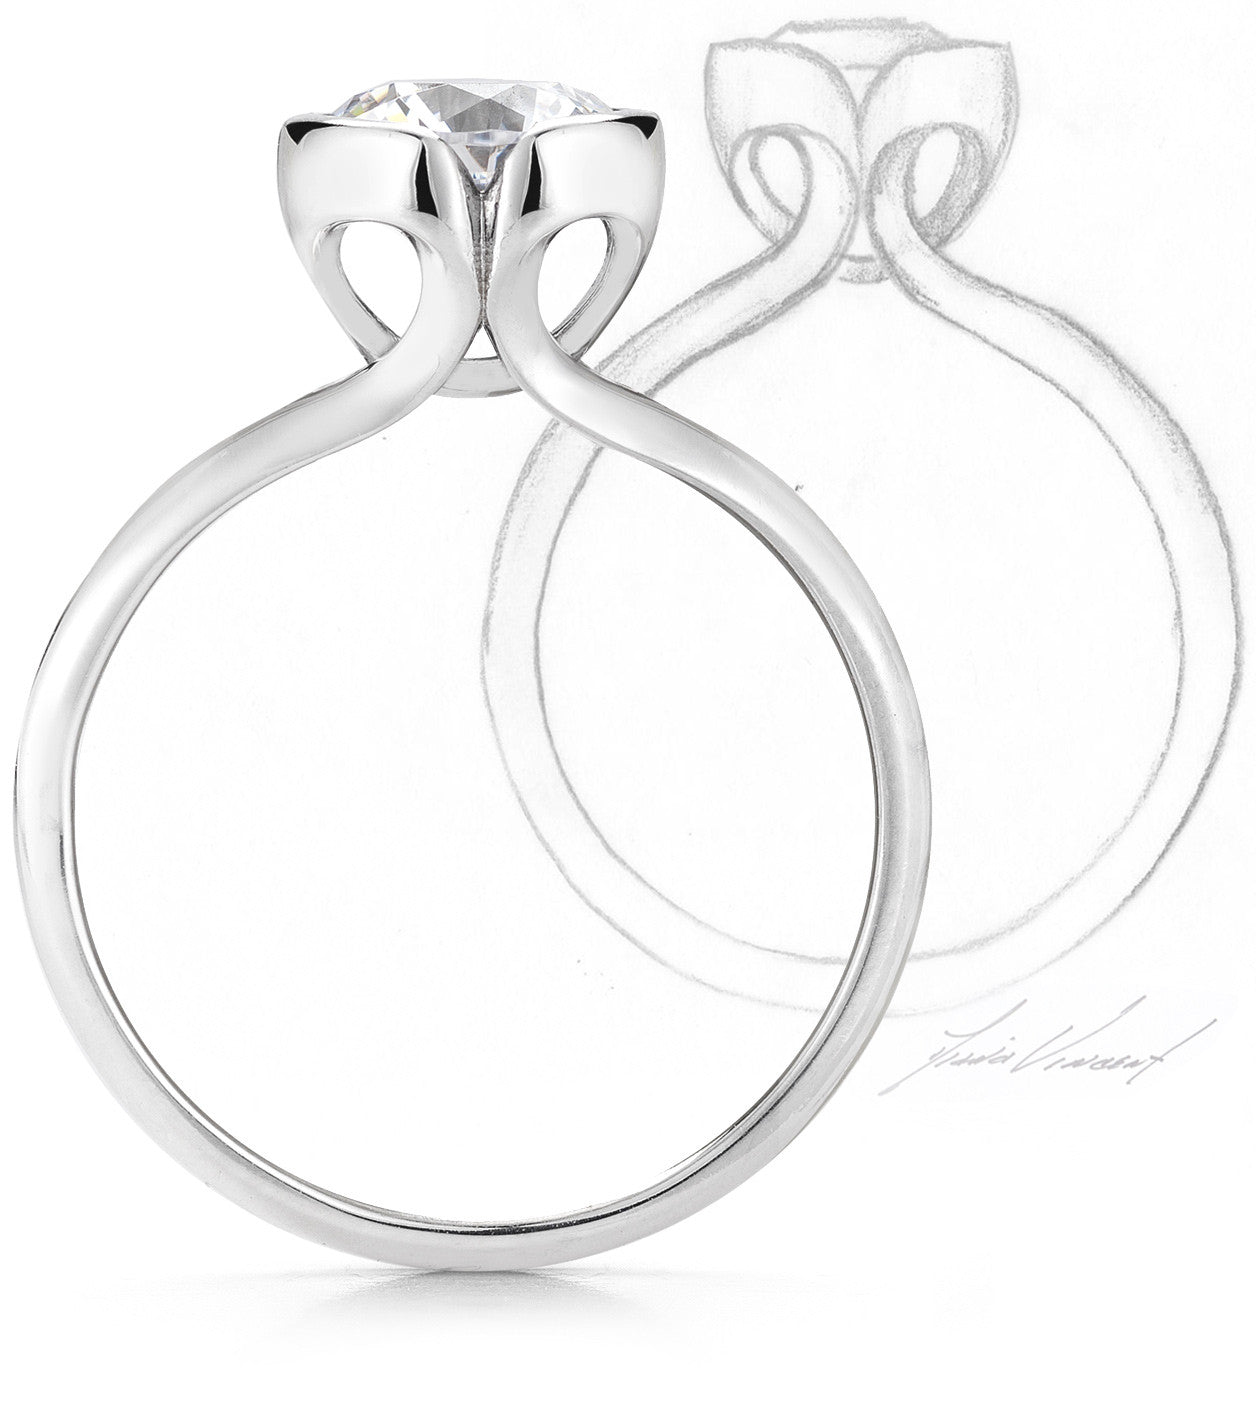 Steller Diamond Ring and Sketch